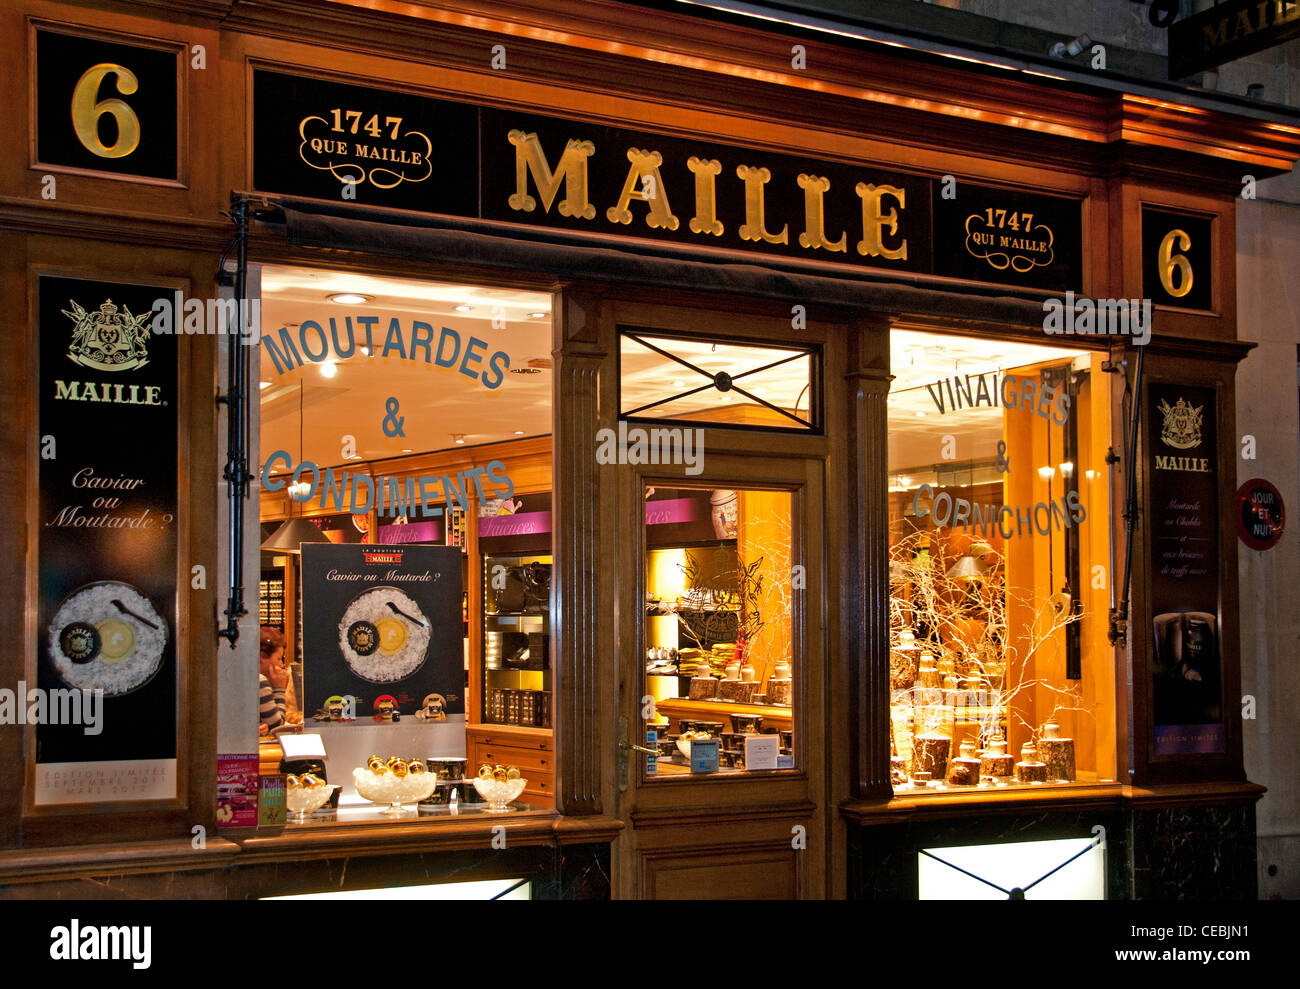 Maille Stock Photos & Maille Stock Images - Alamy